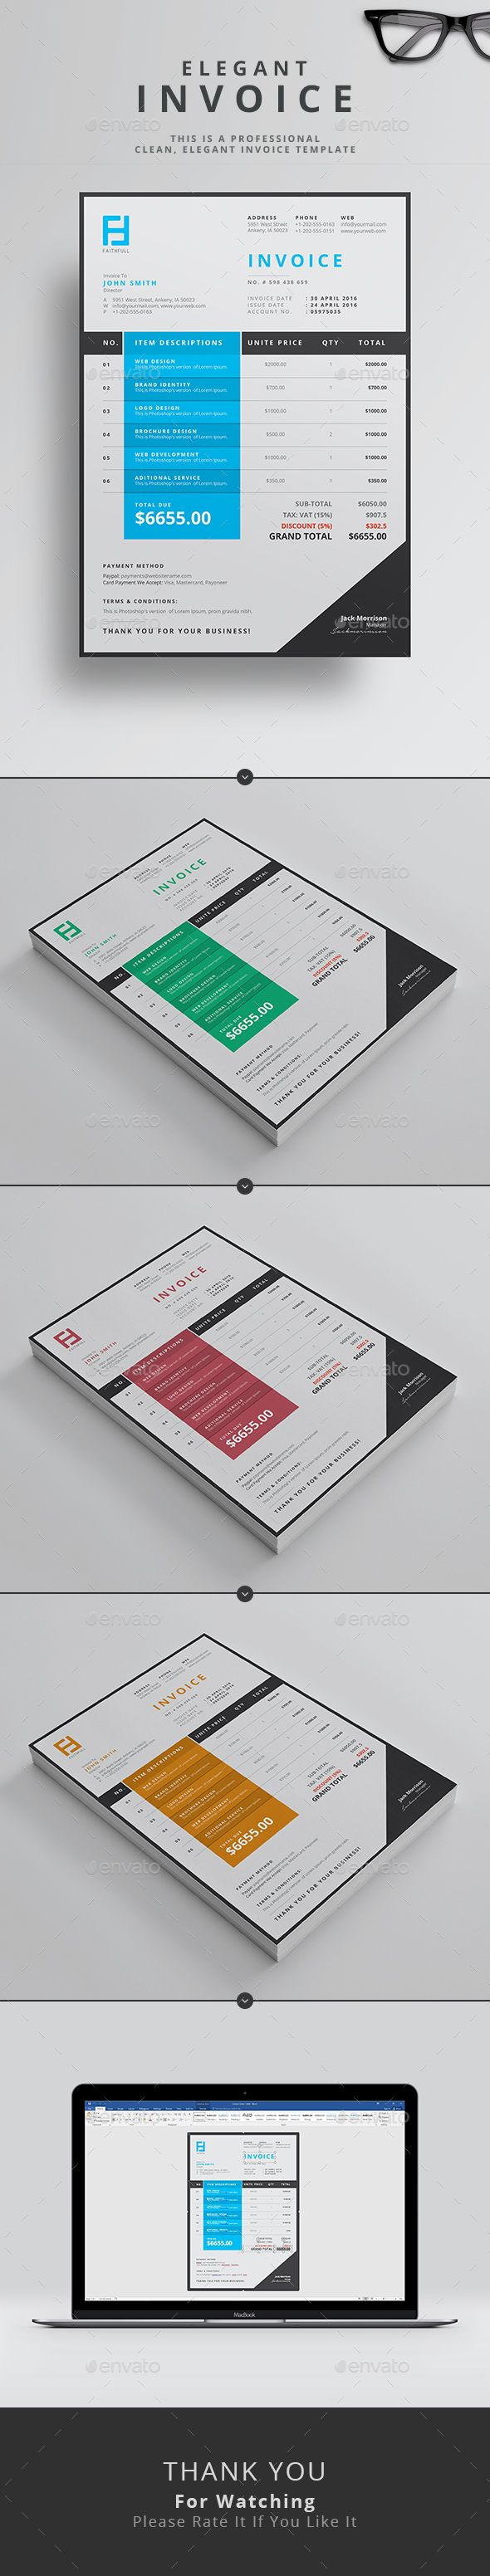 Proposal Invoice Template     hardhost info 17 best ideas about invoice template on pinterest   invoice design  Invoice  templates